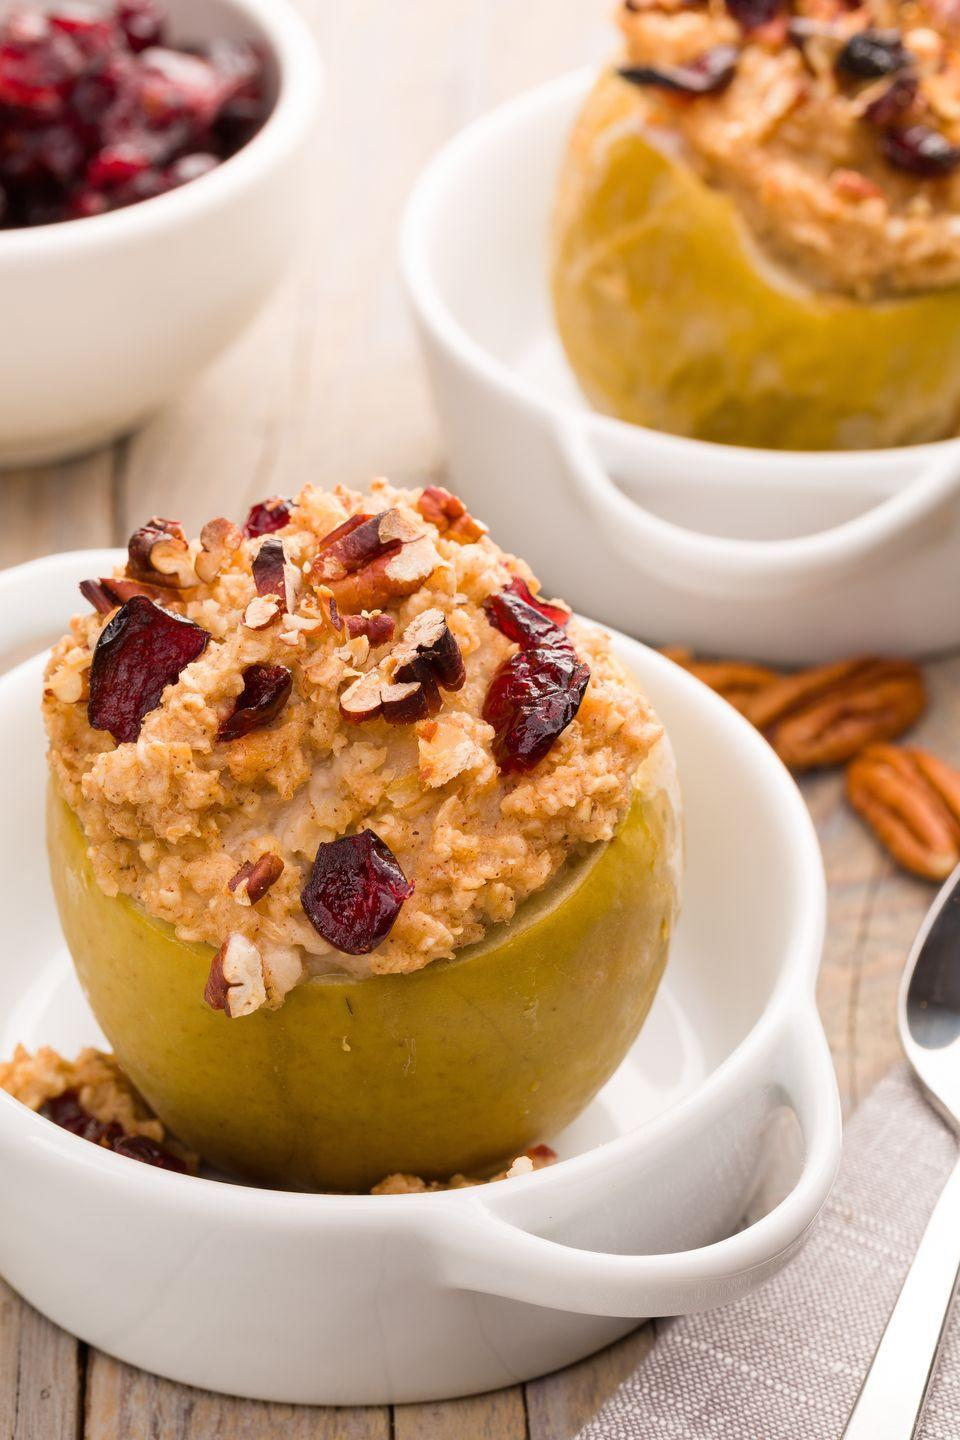 "<p>The only breakfast you do to eat all fall. Stuffed with oatmeal, cinnamon, and maple syrup, these baked apples are a good-for-you start to the day.</p><p>Get the recipe from <a href=""https://www.delish.com/cooking/recipe-ideas/recipes/a43872/breakfast-baked-apples-recipe/"" rel=""nofollow noopener"" target=""_blank"" data-ylk=""slk:Delish"" class=""link rapid-noclick-resp"">Delish</a>.</p>"